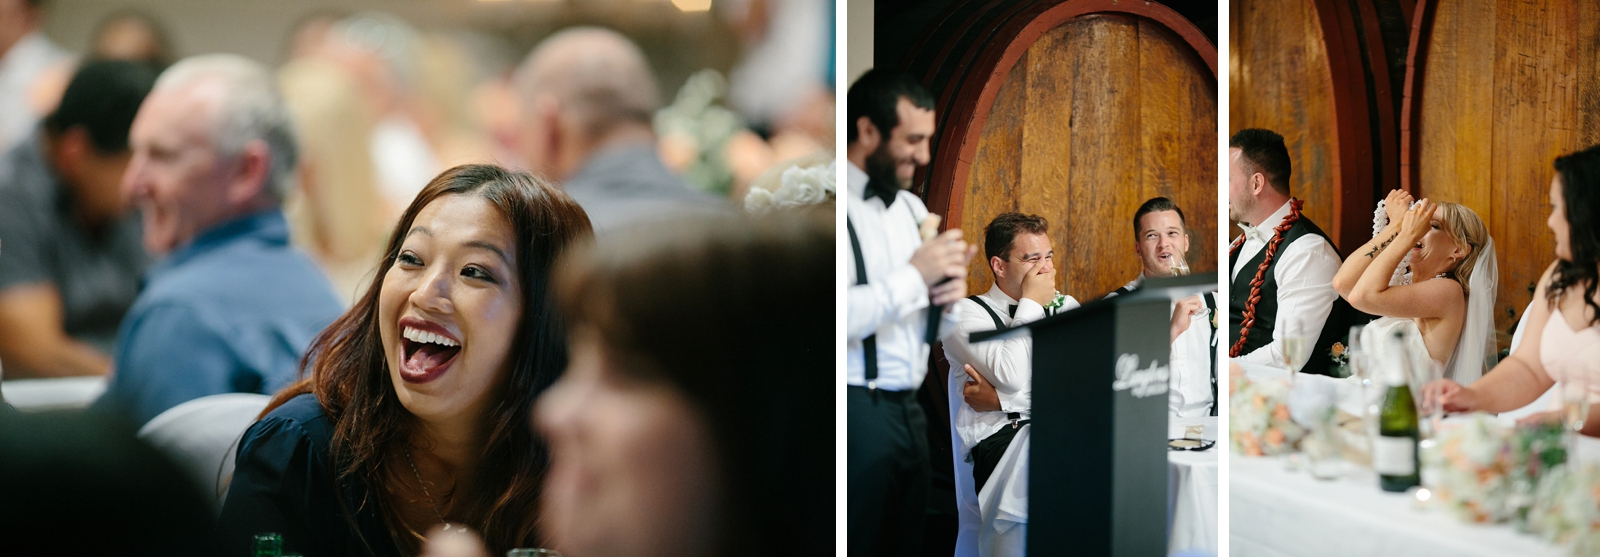 ConnorLaura_Auckland Wedding Photographer_Patty Lagera_0102.jpg